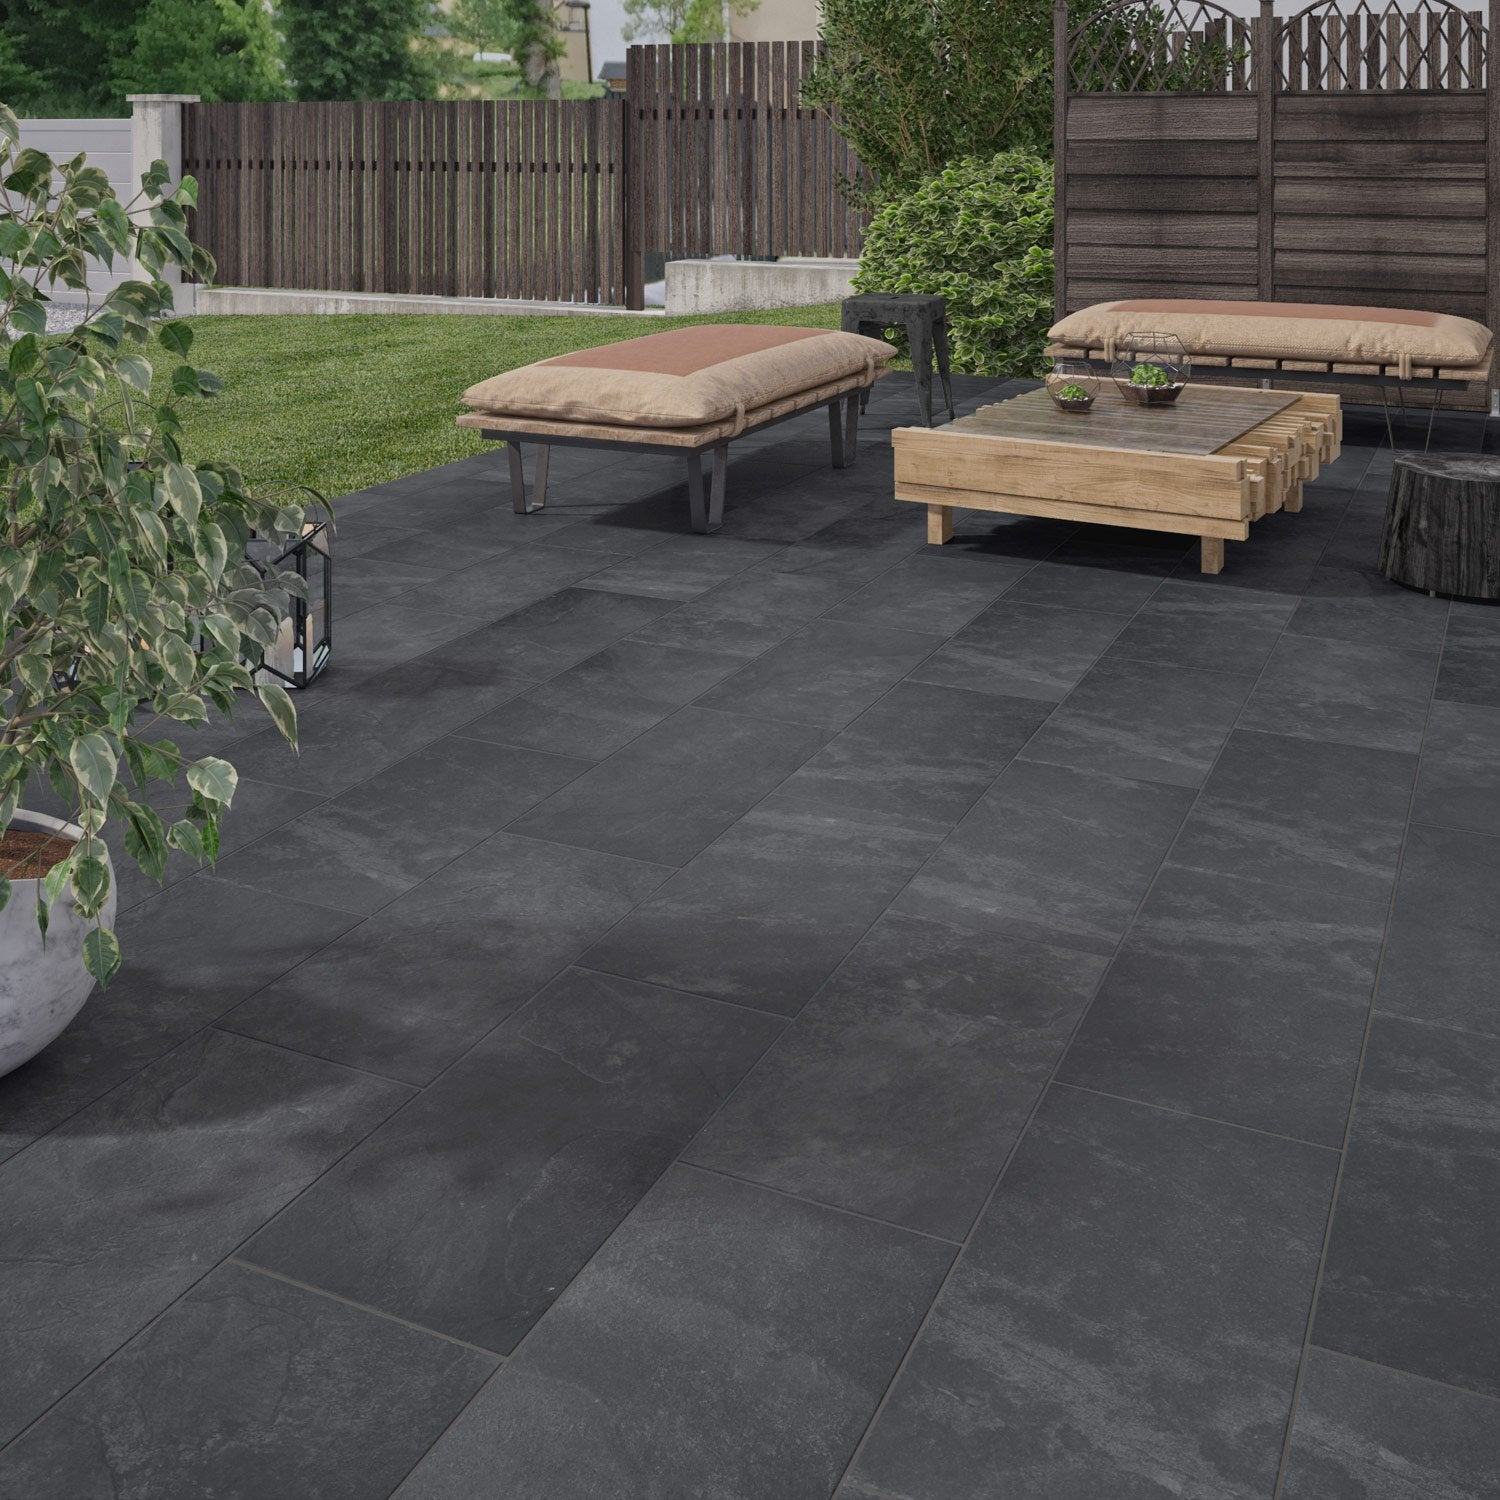 Carrelage Jardin Carrelage Terrasse Exterieur Point P Photos De